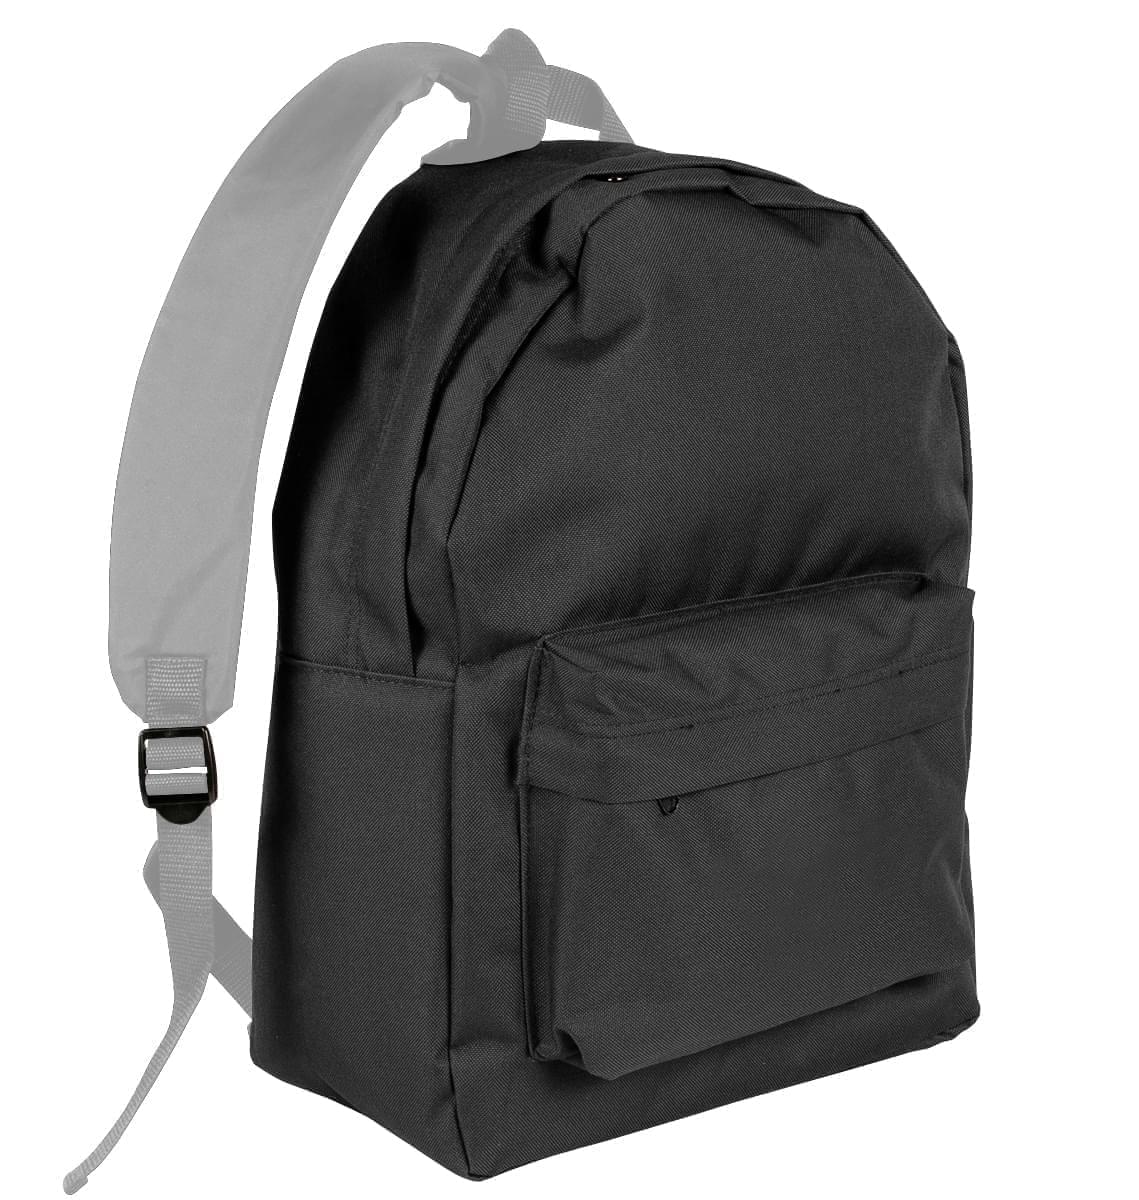 USA Made Nylon Poly Backpack Knapsacks, Black-Grey, 8960-AOU